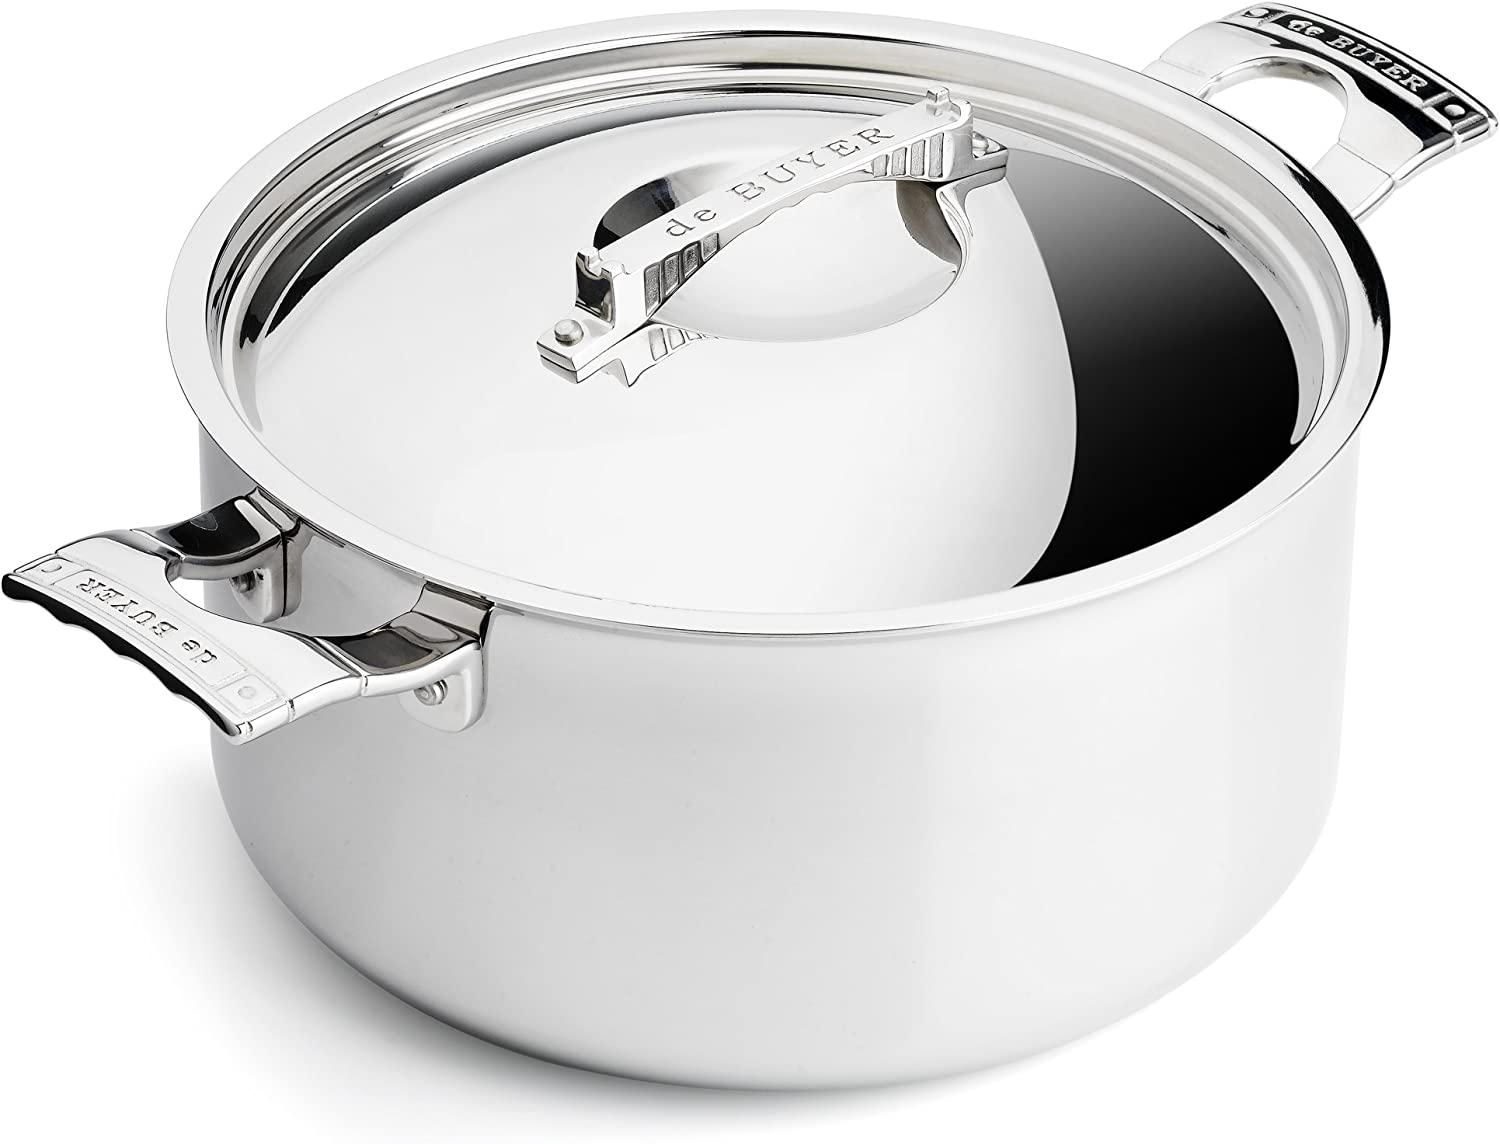 Silver Stainless Steel DE BUYER Stewpan with Lid 35.99 x 33.81 x 15.19 cm 24 cm